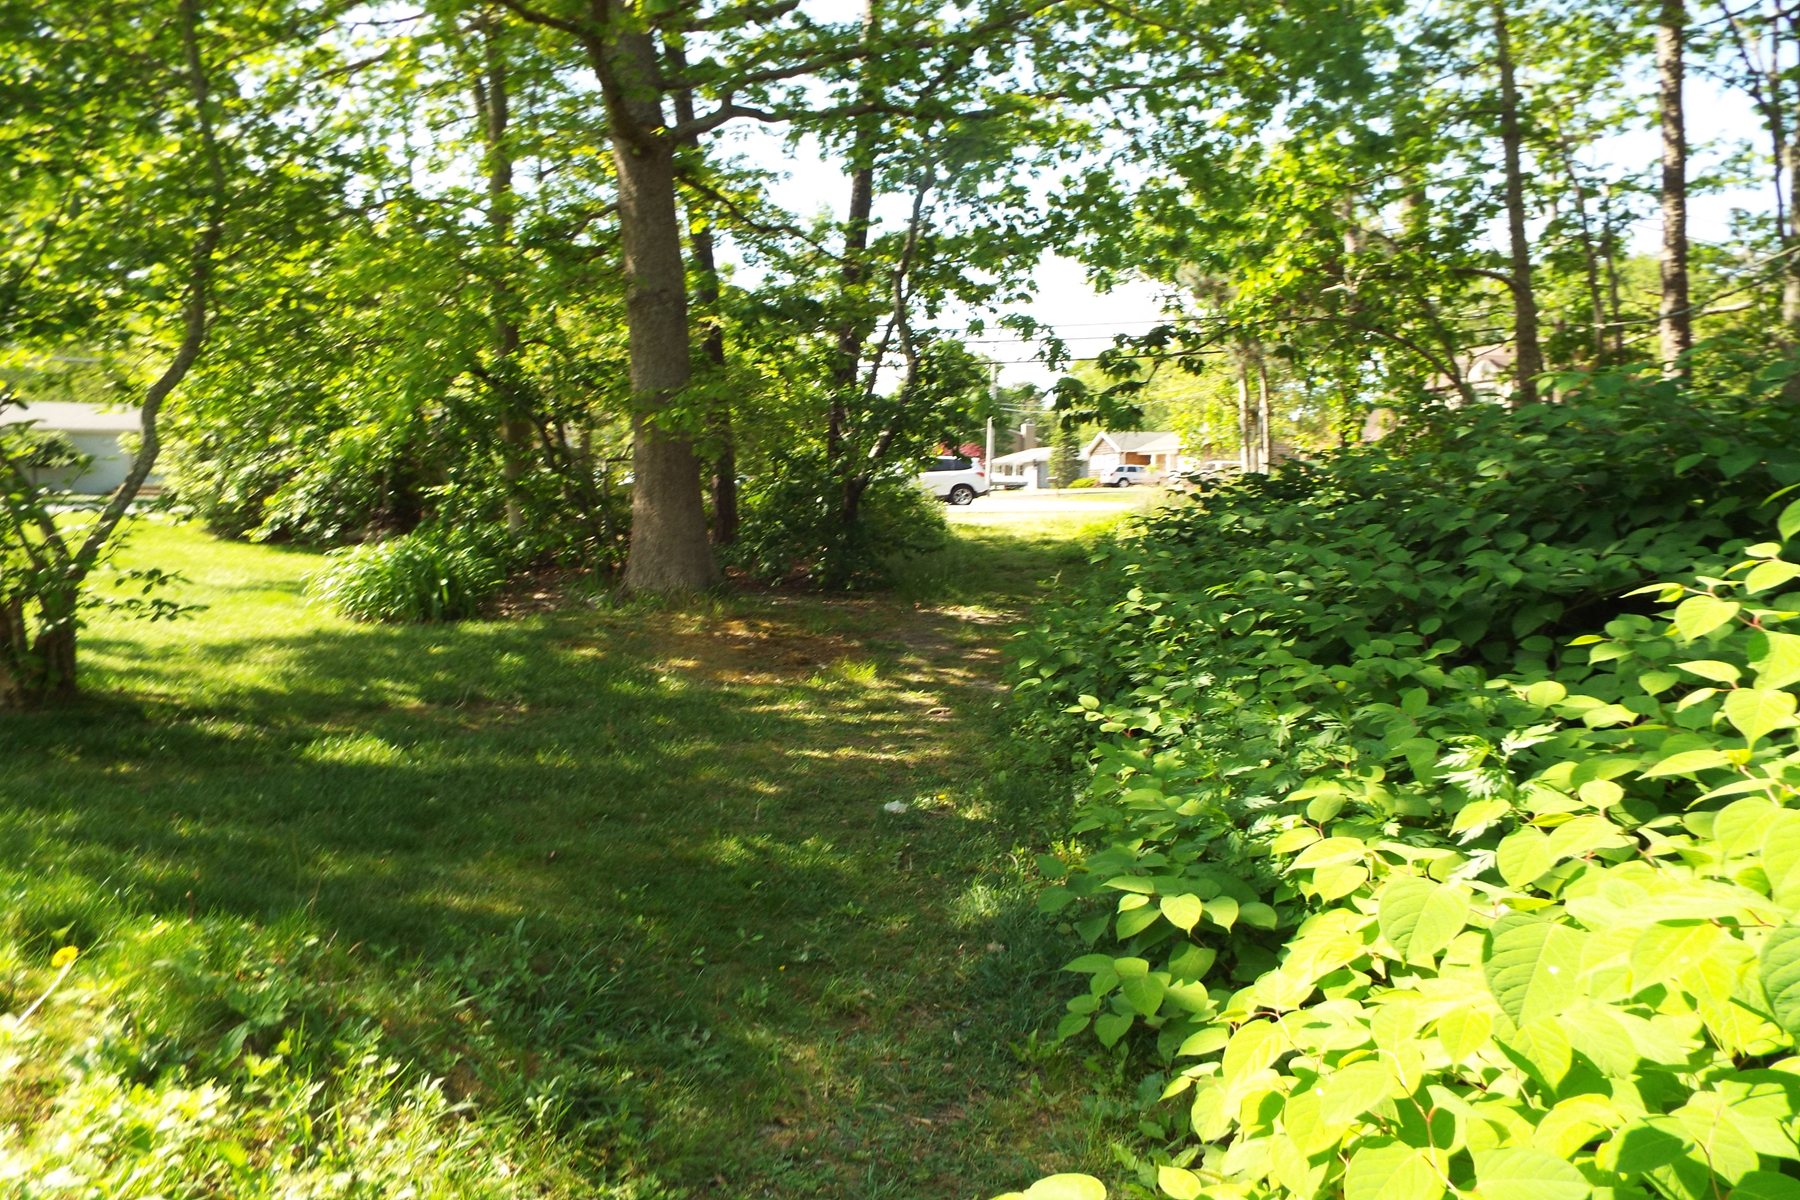 Land for Sale at Wooded Lot In Historic Pinewald Section of Bayville 1 Elizabeth Avenue Bayville, New Jersey 08721 United States